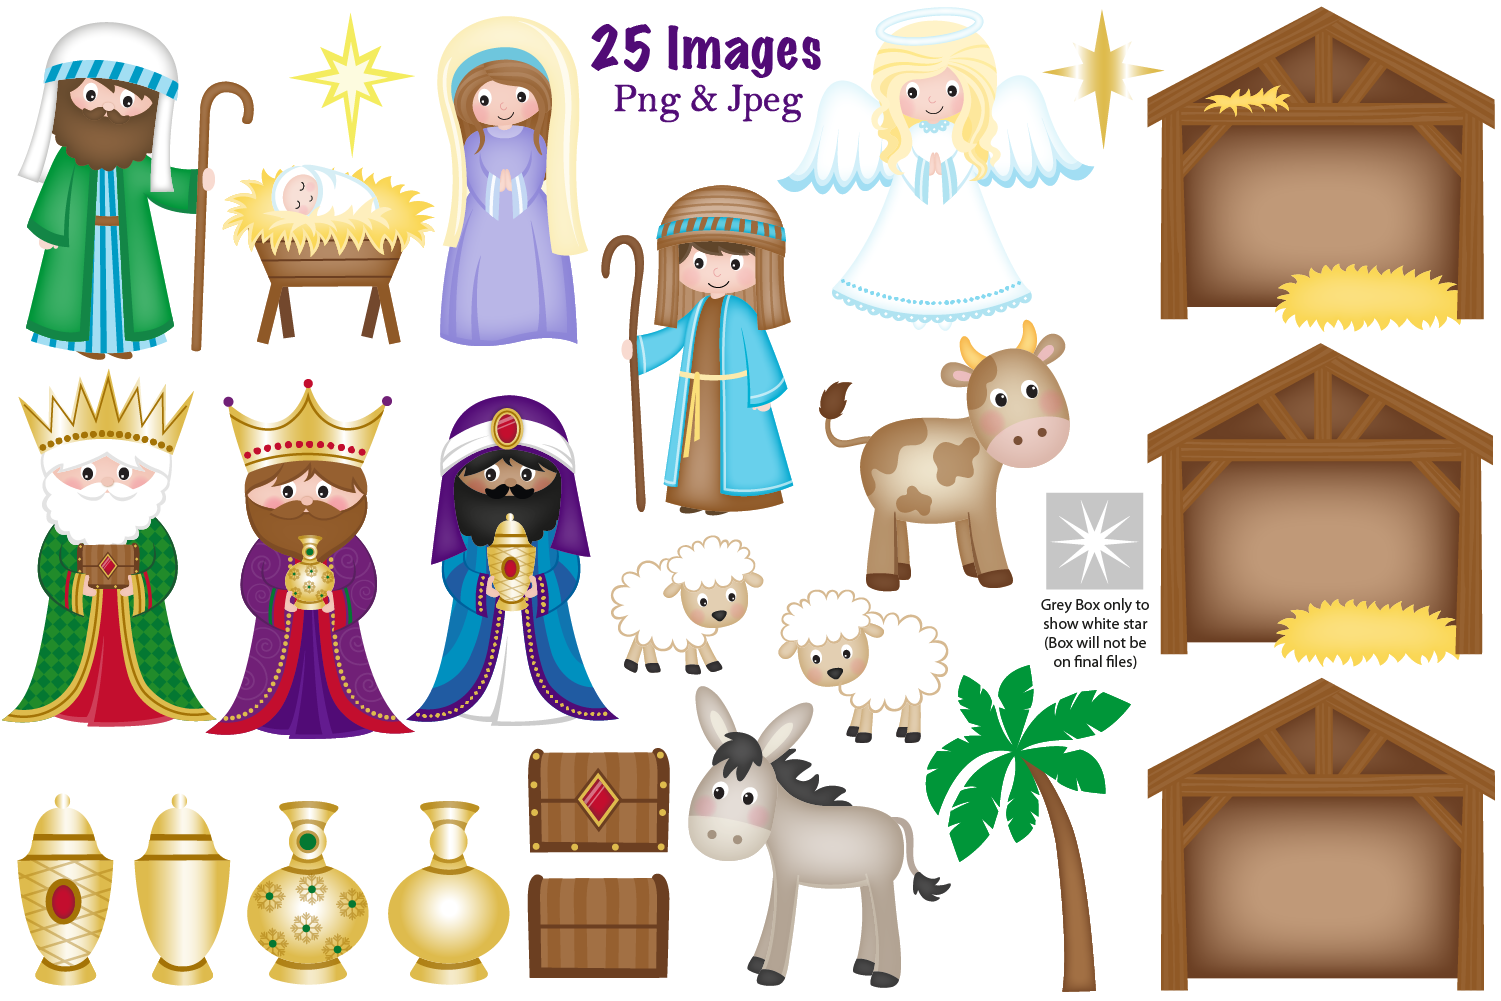 Nativity clipart, Christmas Nativity, Nativity Scene example image 2